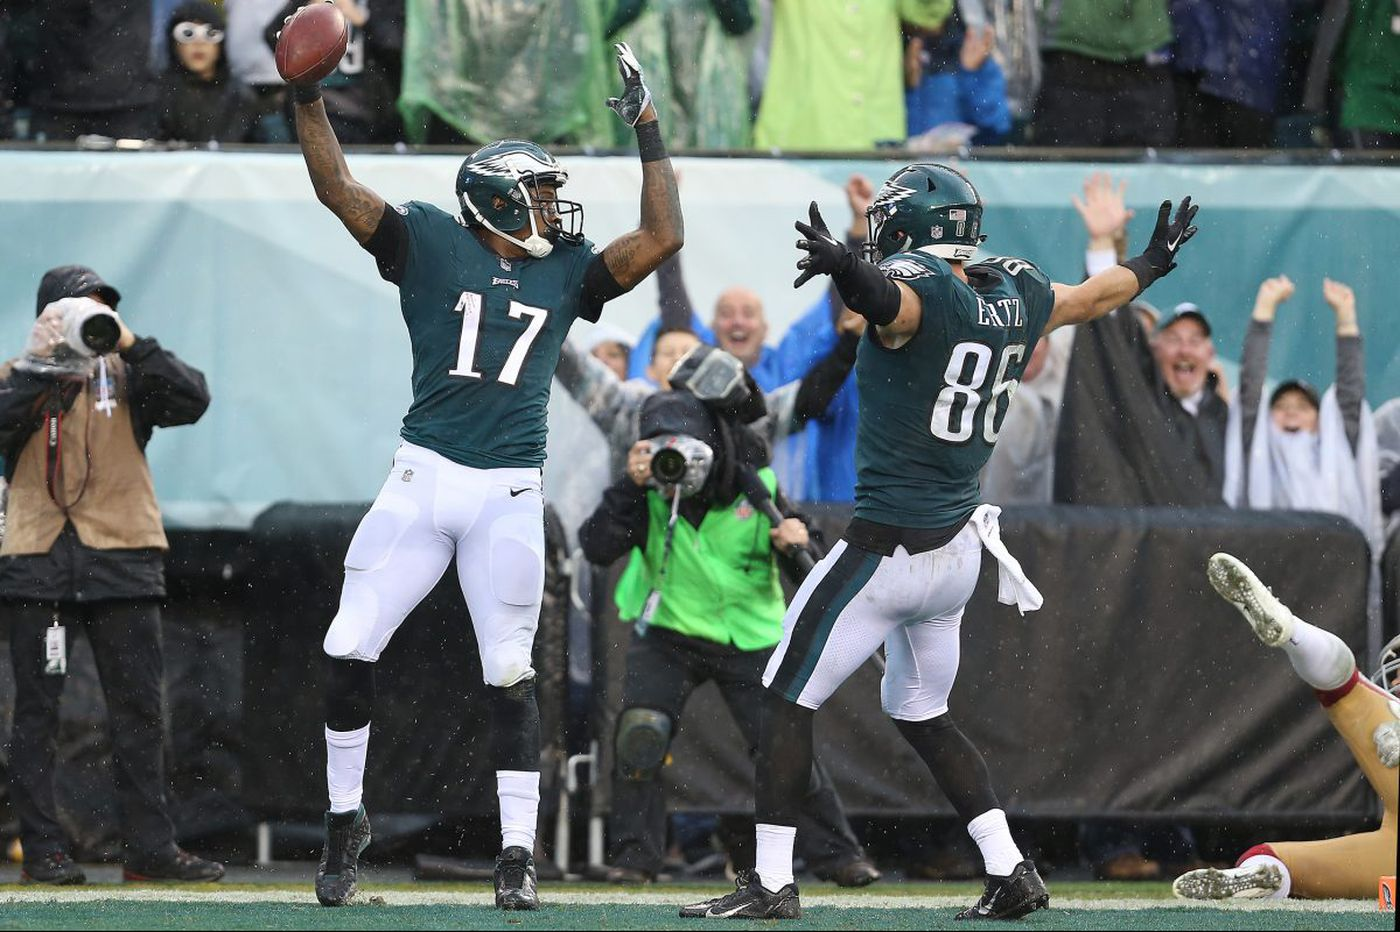 Why did Alshon Jeffery sign with the Eagles? Sunday says it all | Mike Sielski